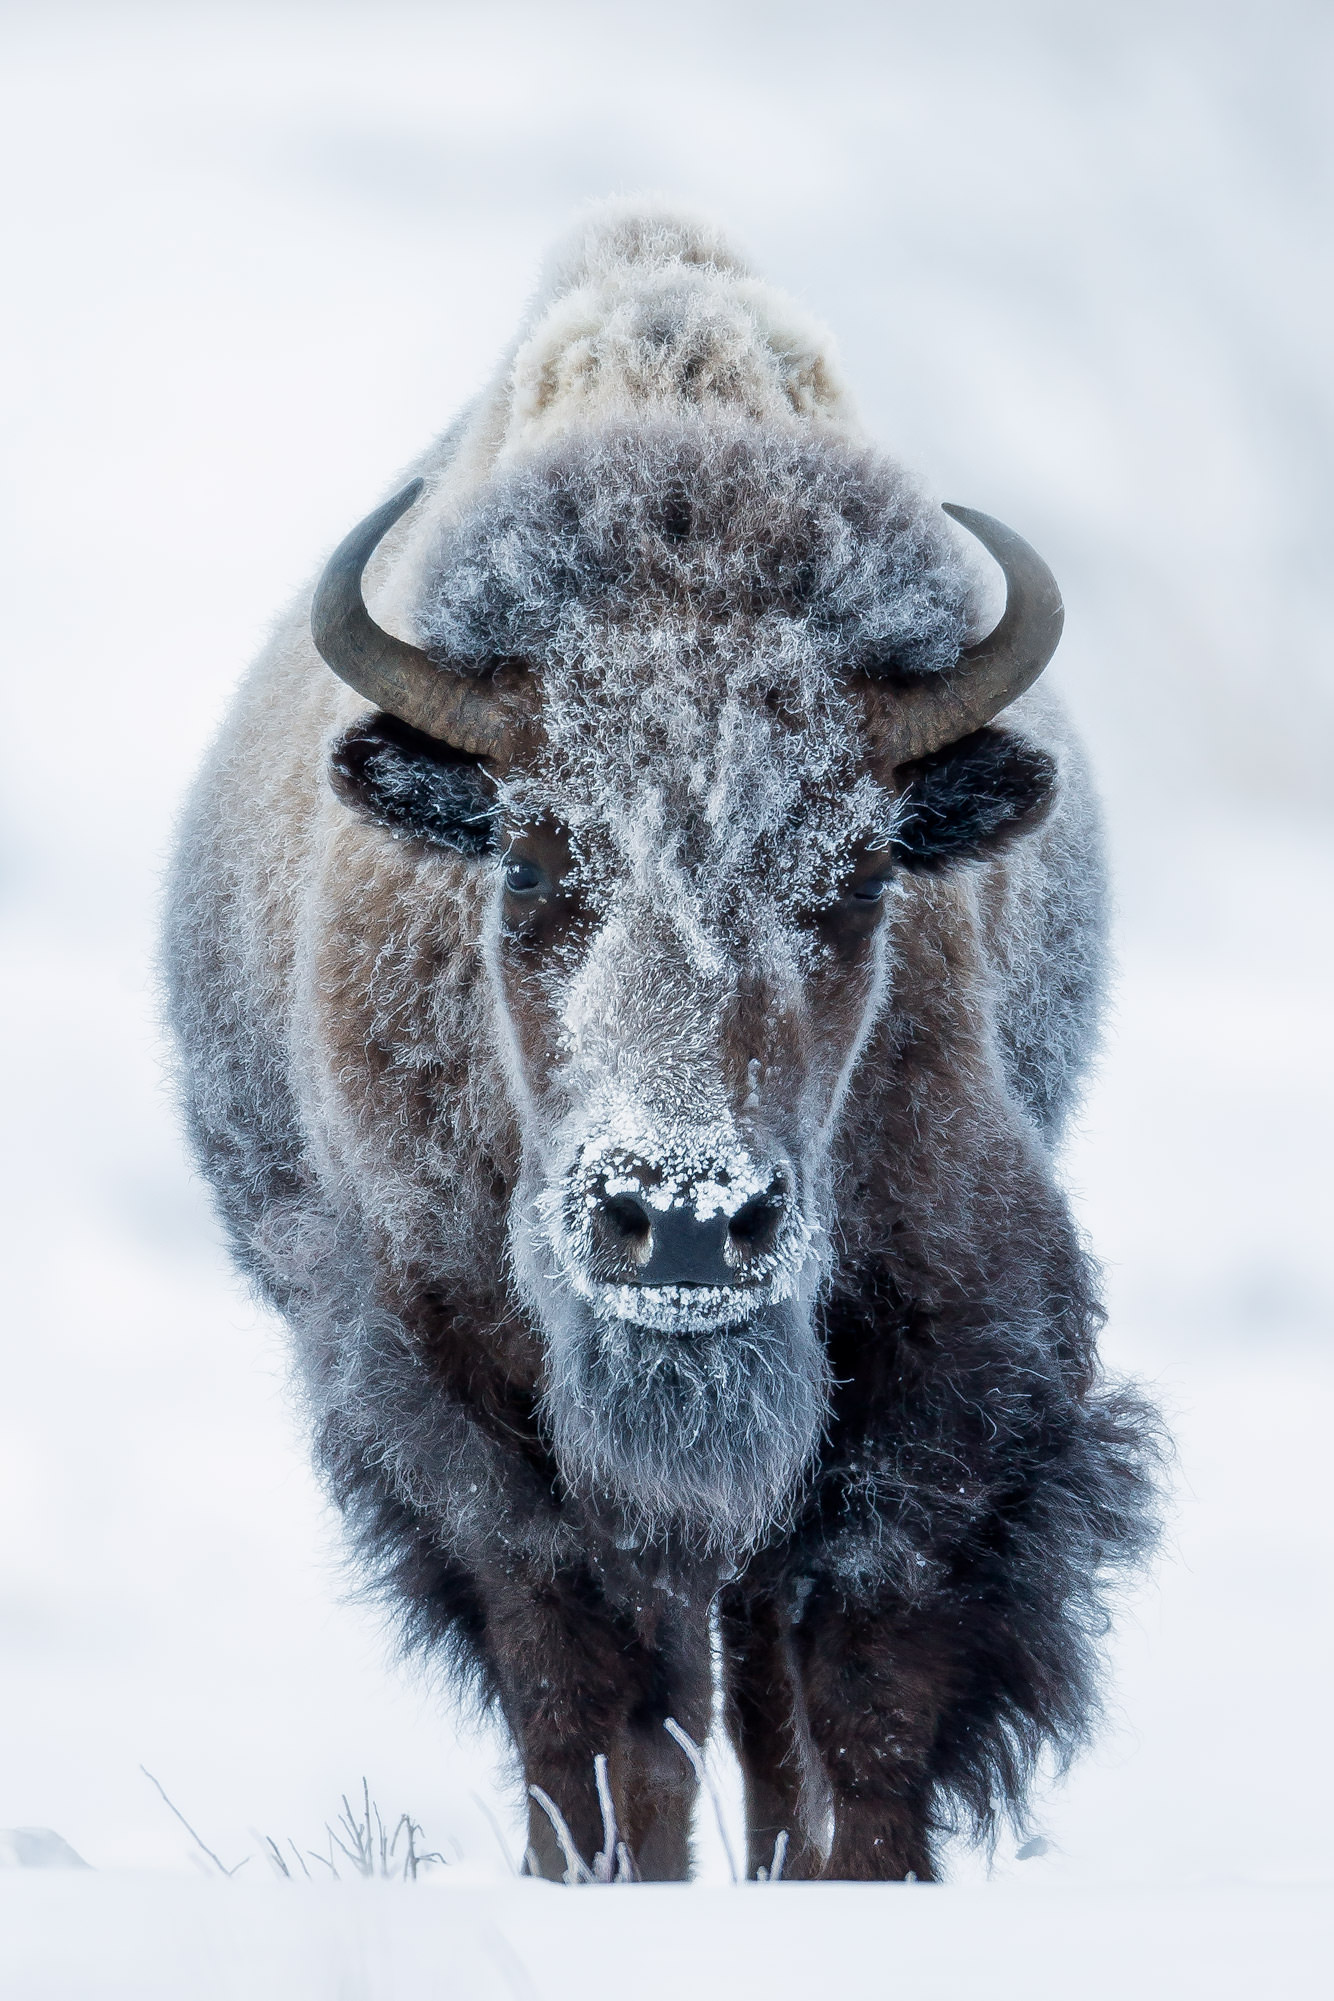 Wyoming, Bison, Winter, Yellowstone, frost, limited edition, photograph, fine art, wildlife, photo